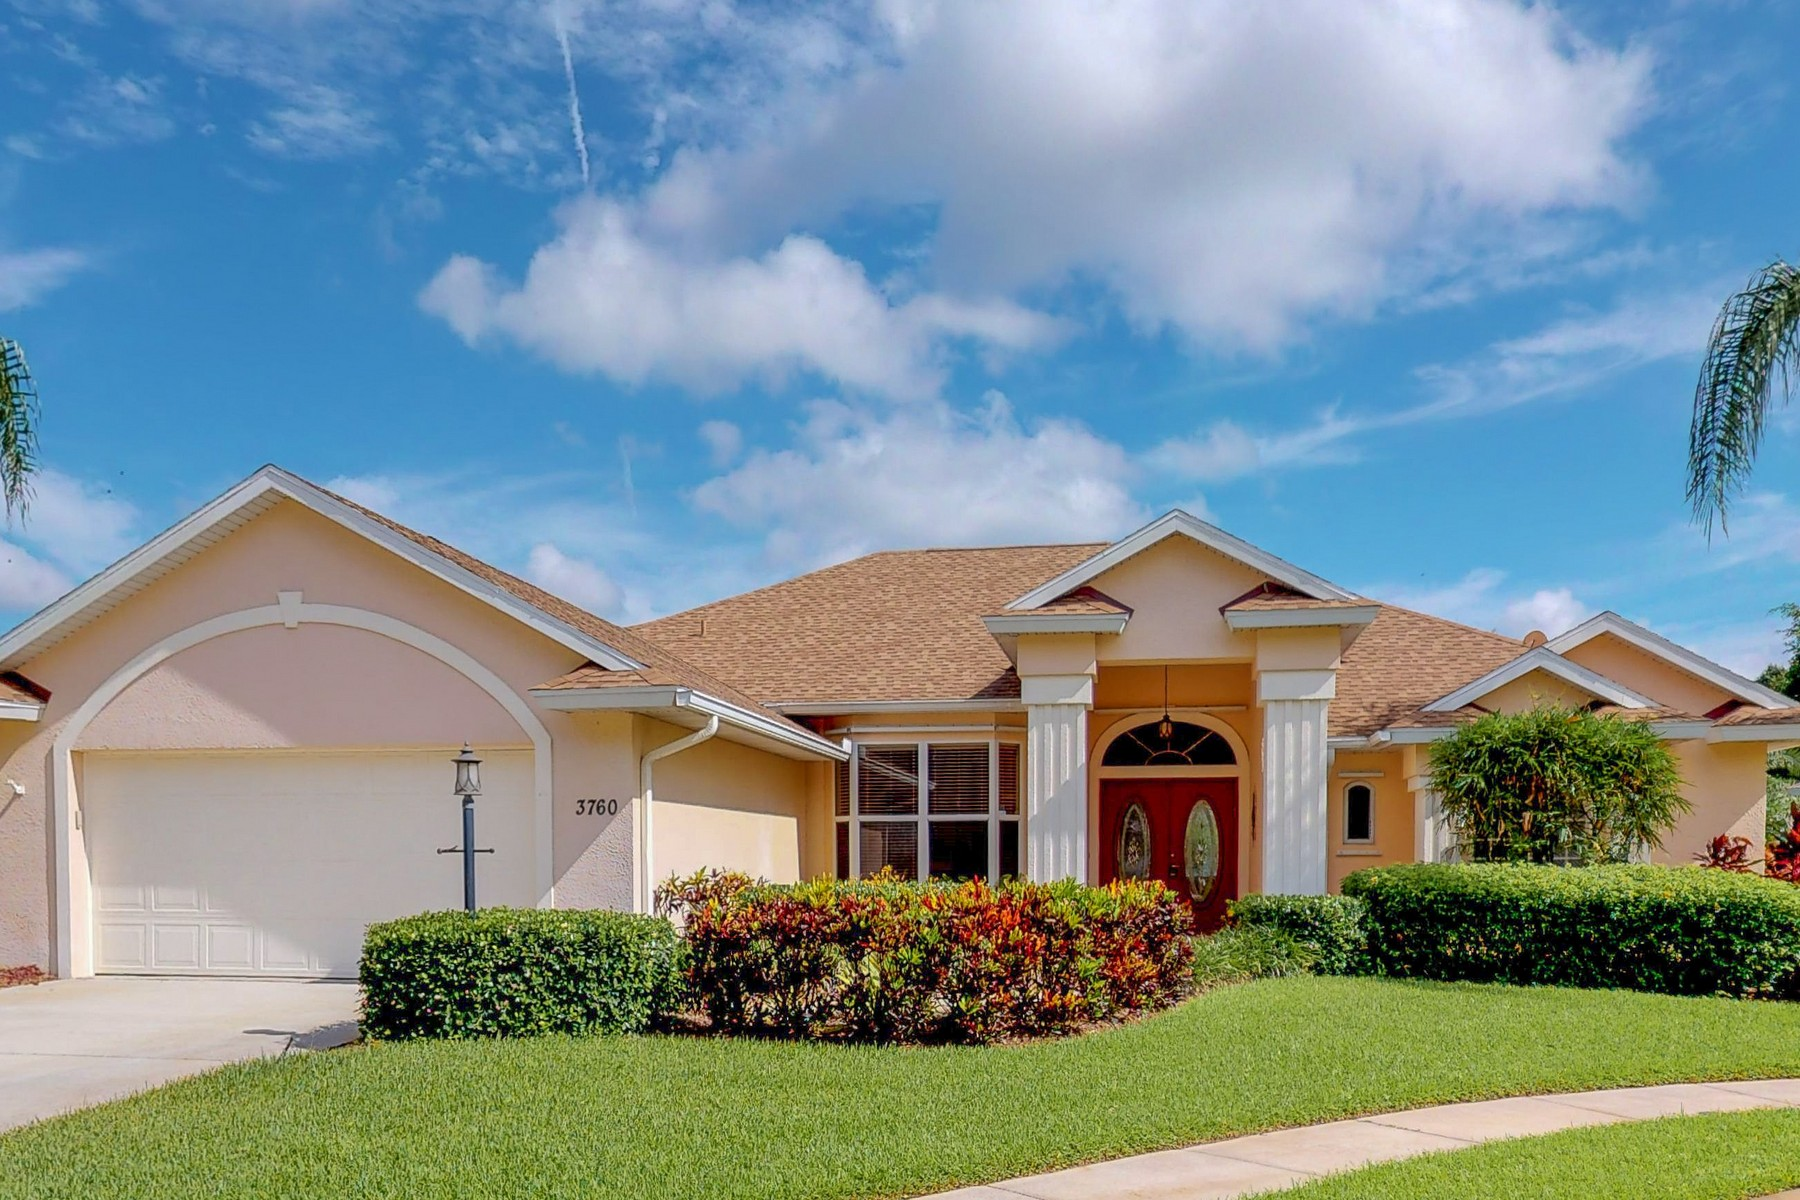 Single Family Home for Sale at So Much Space, So Much Light, Pool! 3760 8th Lane Vero Beach, Florida 32960 United States